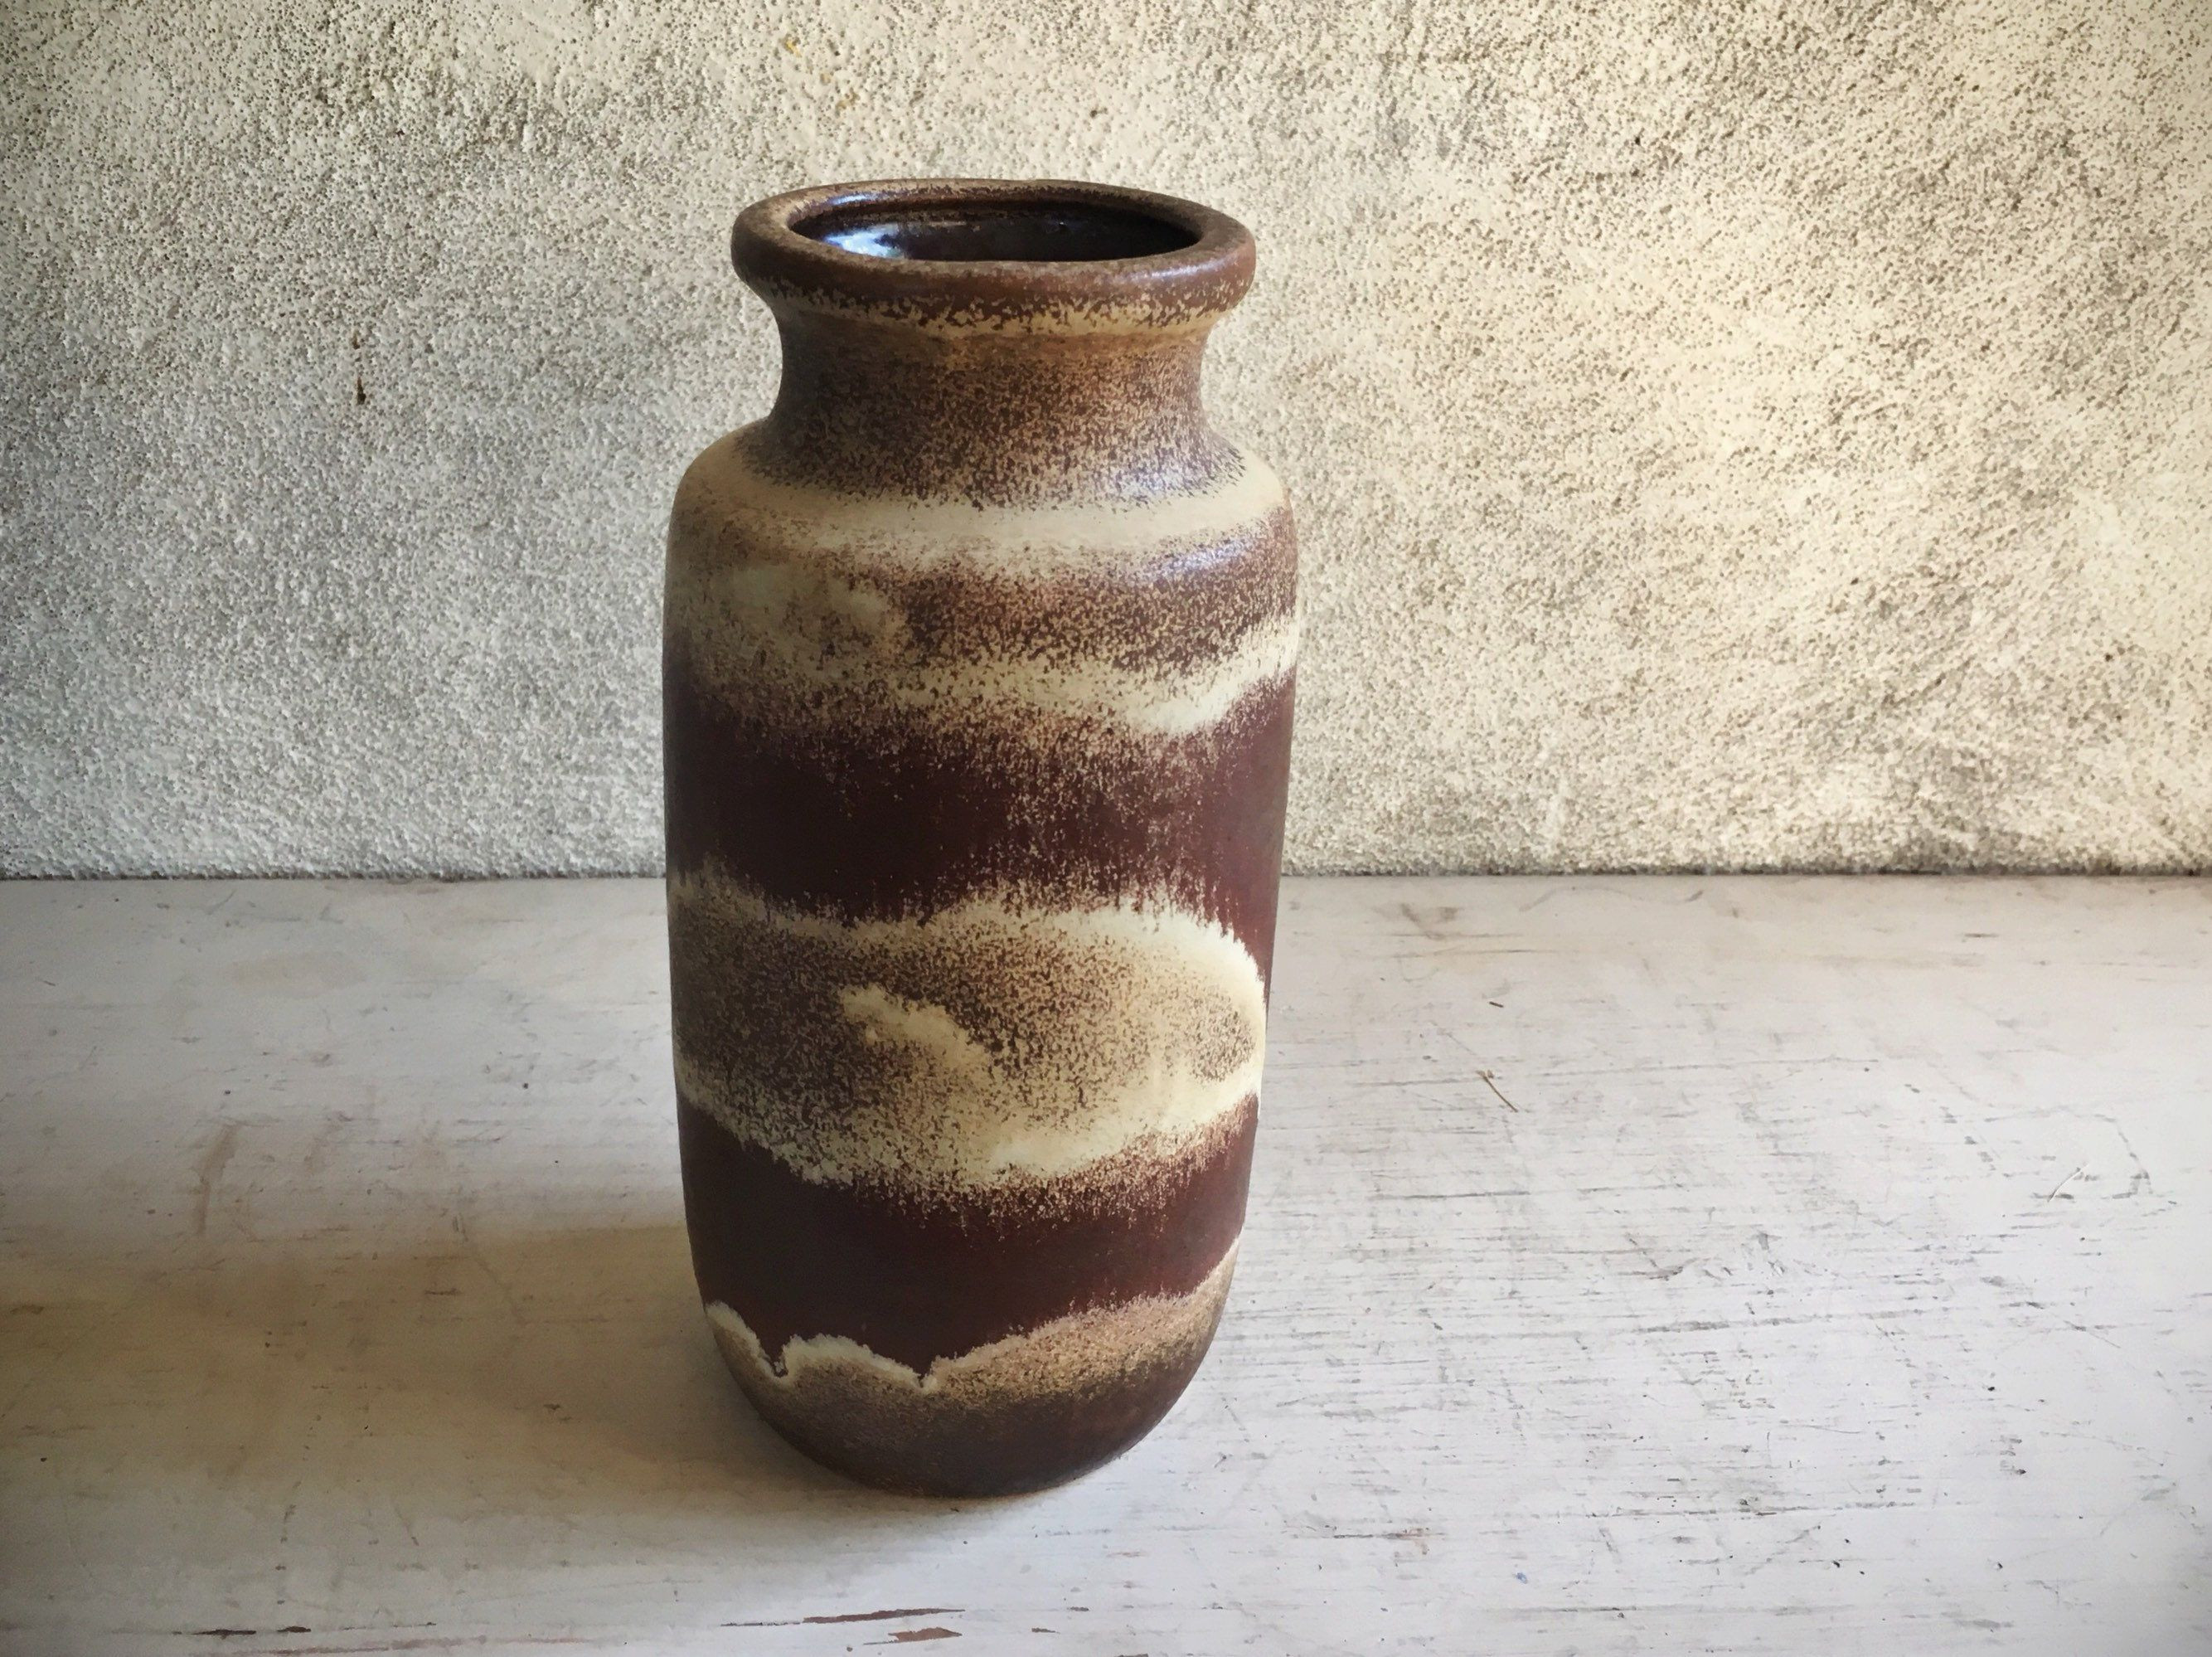 off white vase of 26 vase market coupon the weekly world for mid century pottery west germany vase 213 20 scheurich keramik vase